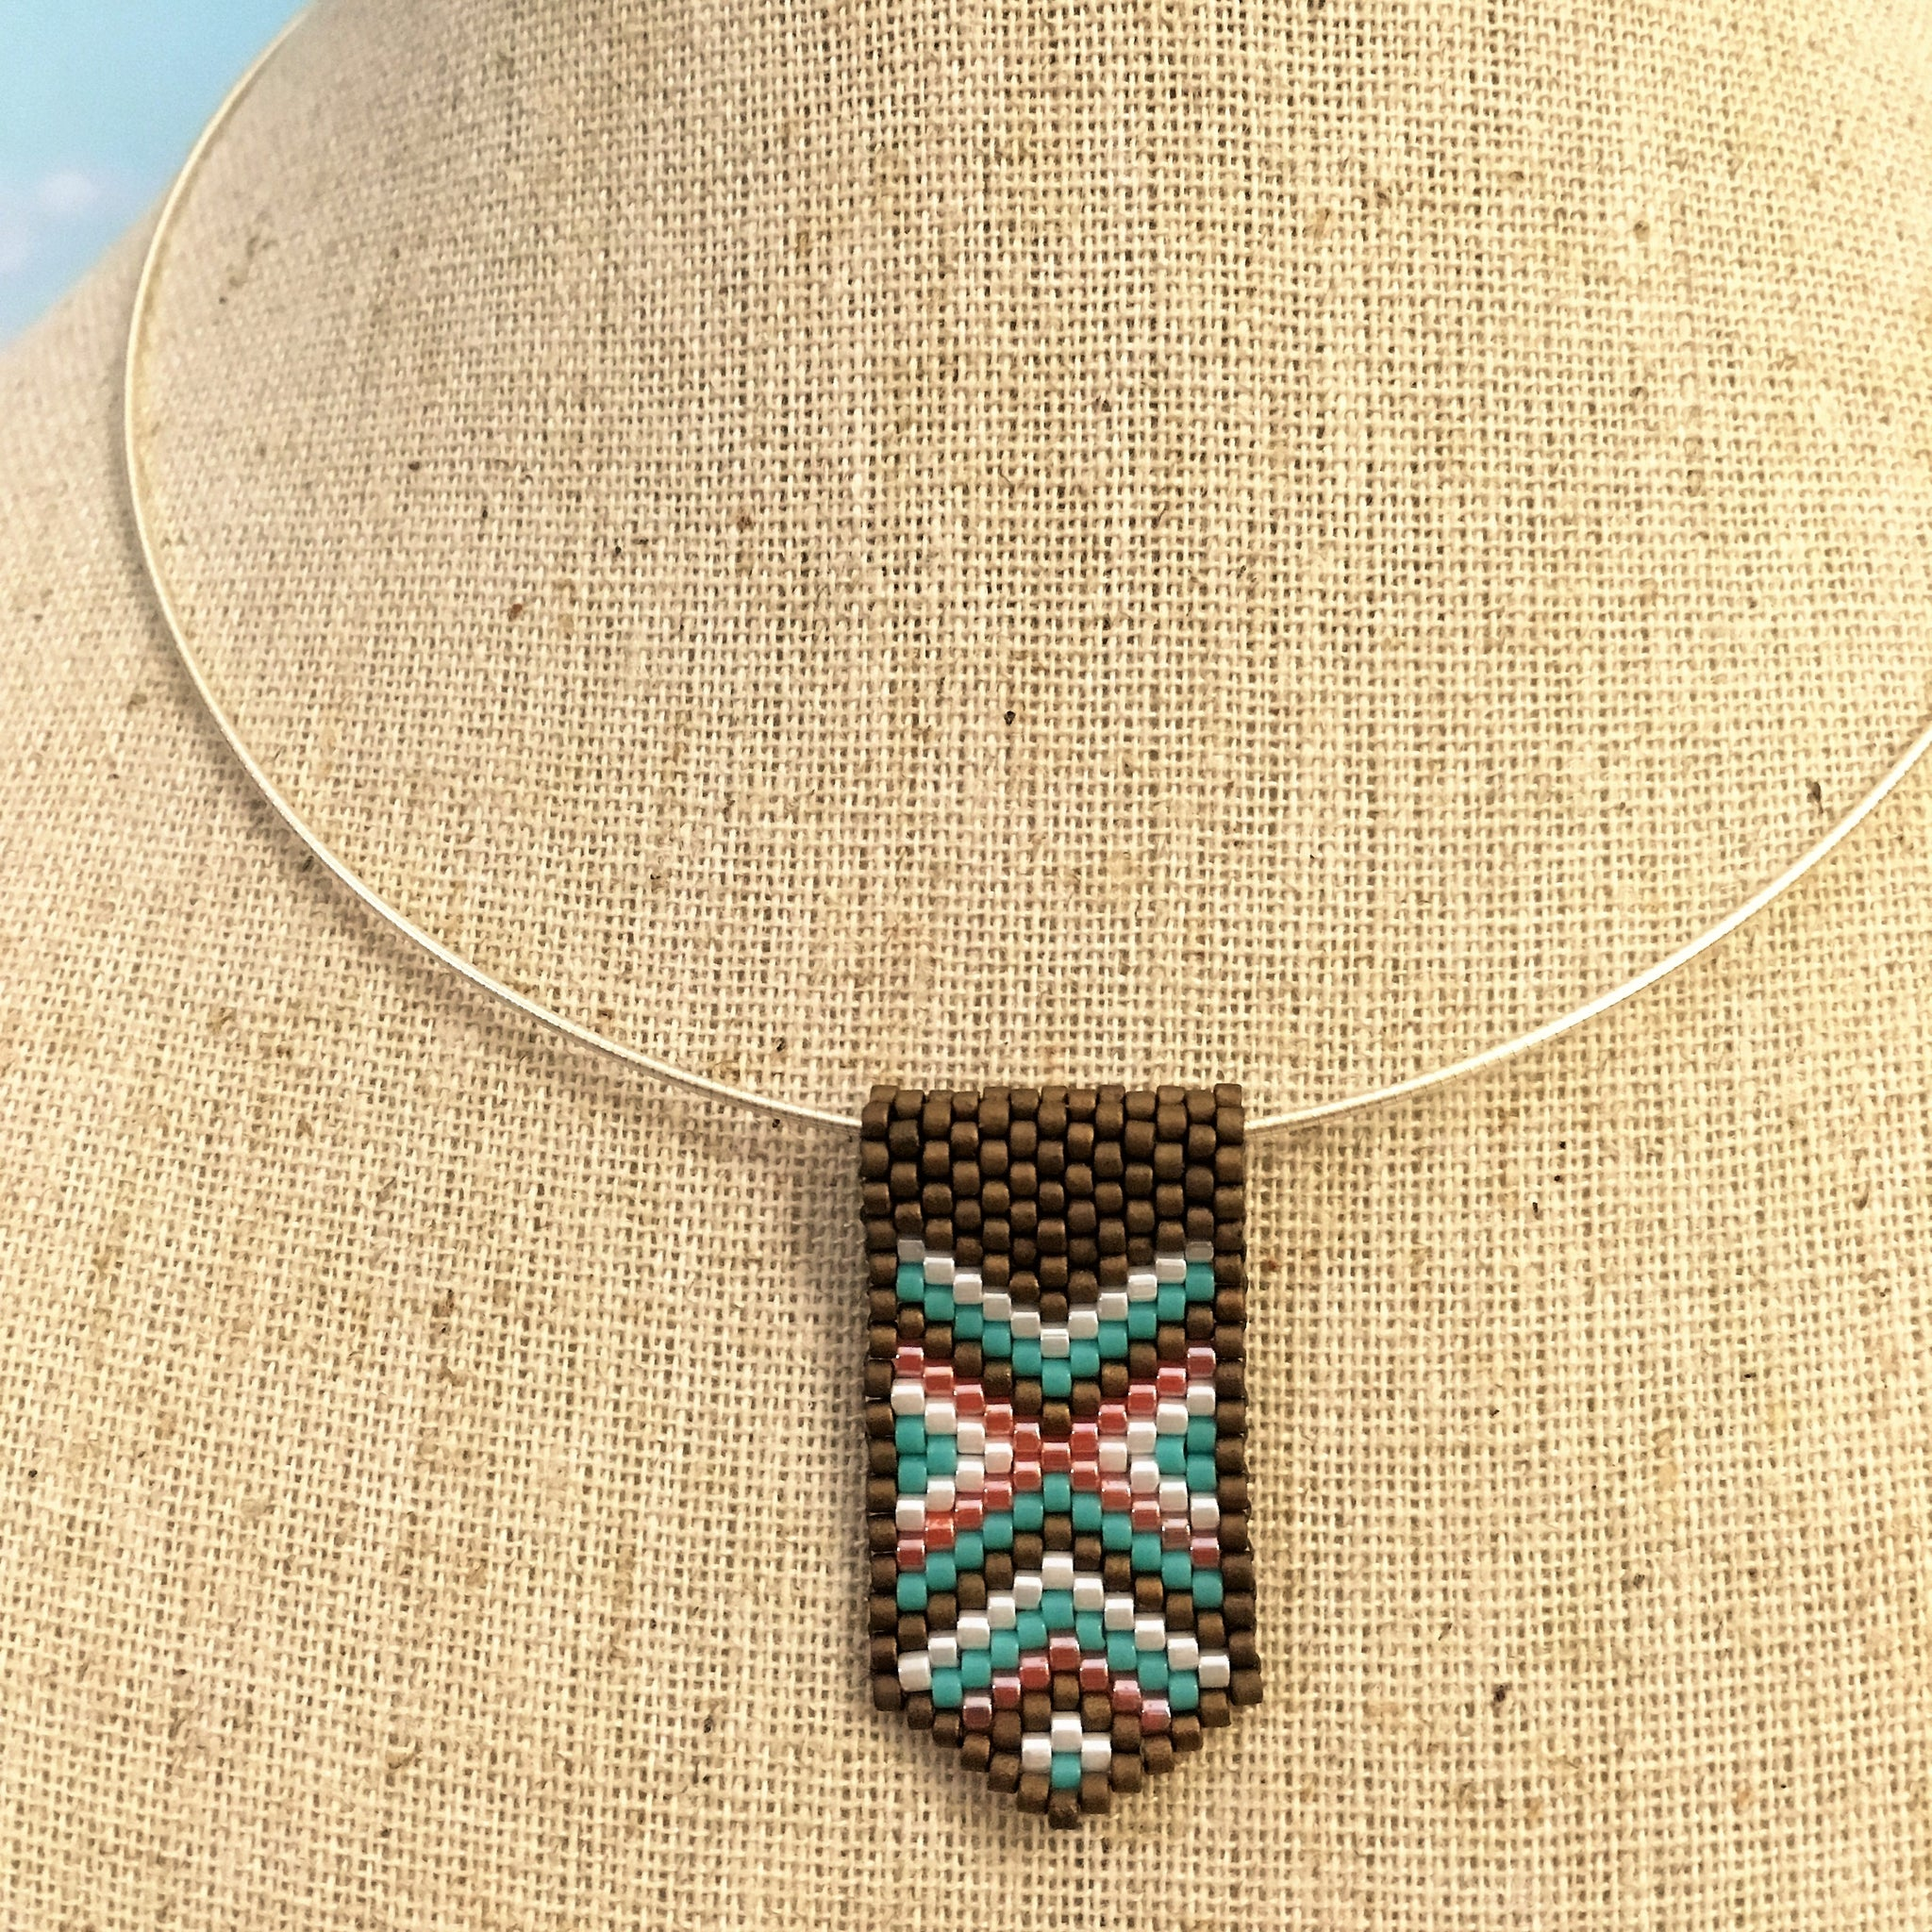 Handmade beaded mini pendant peyote bronze turquoise coral white